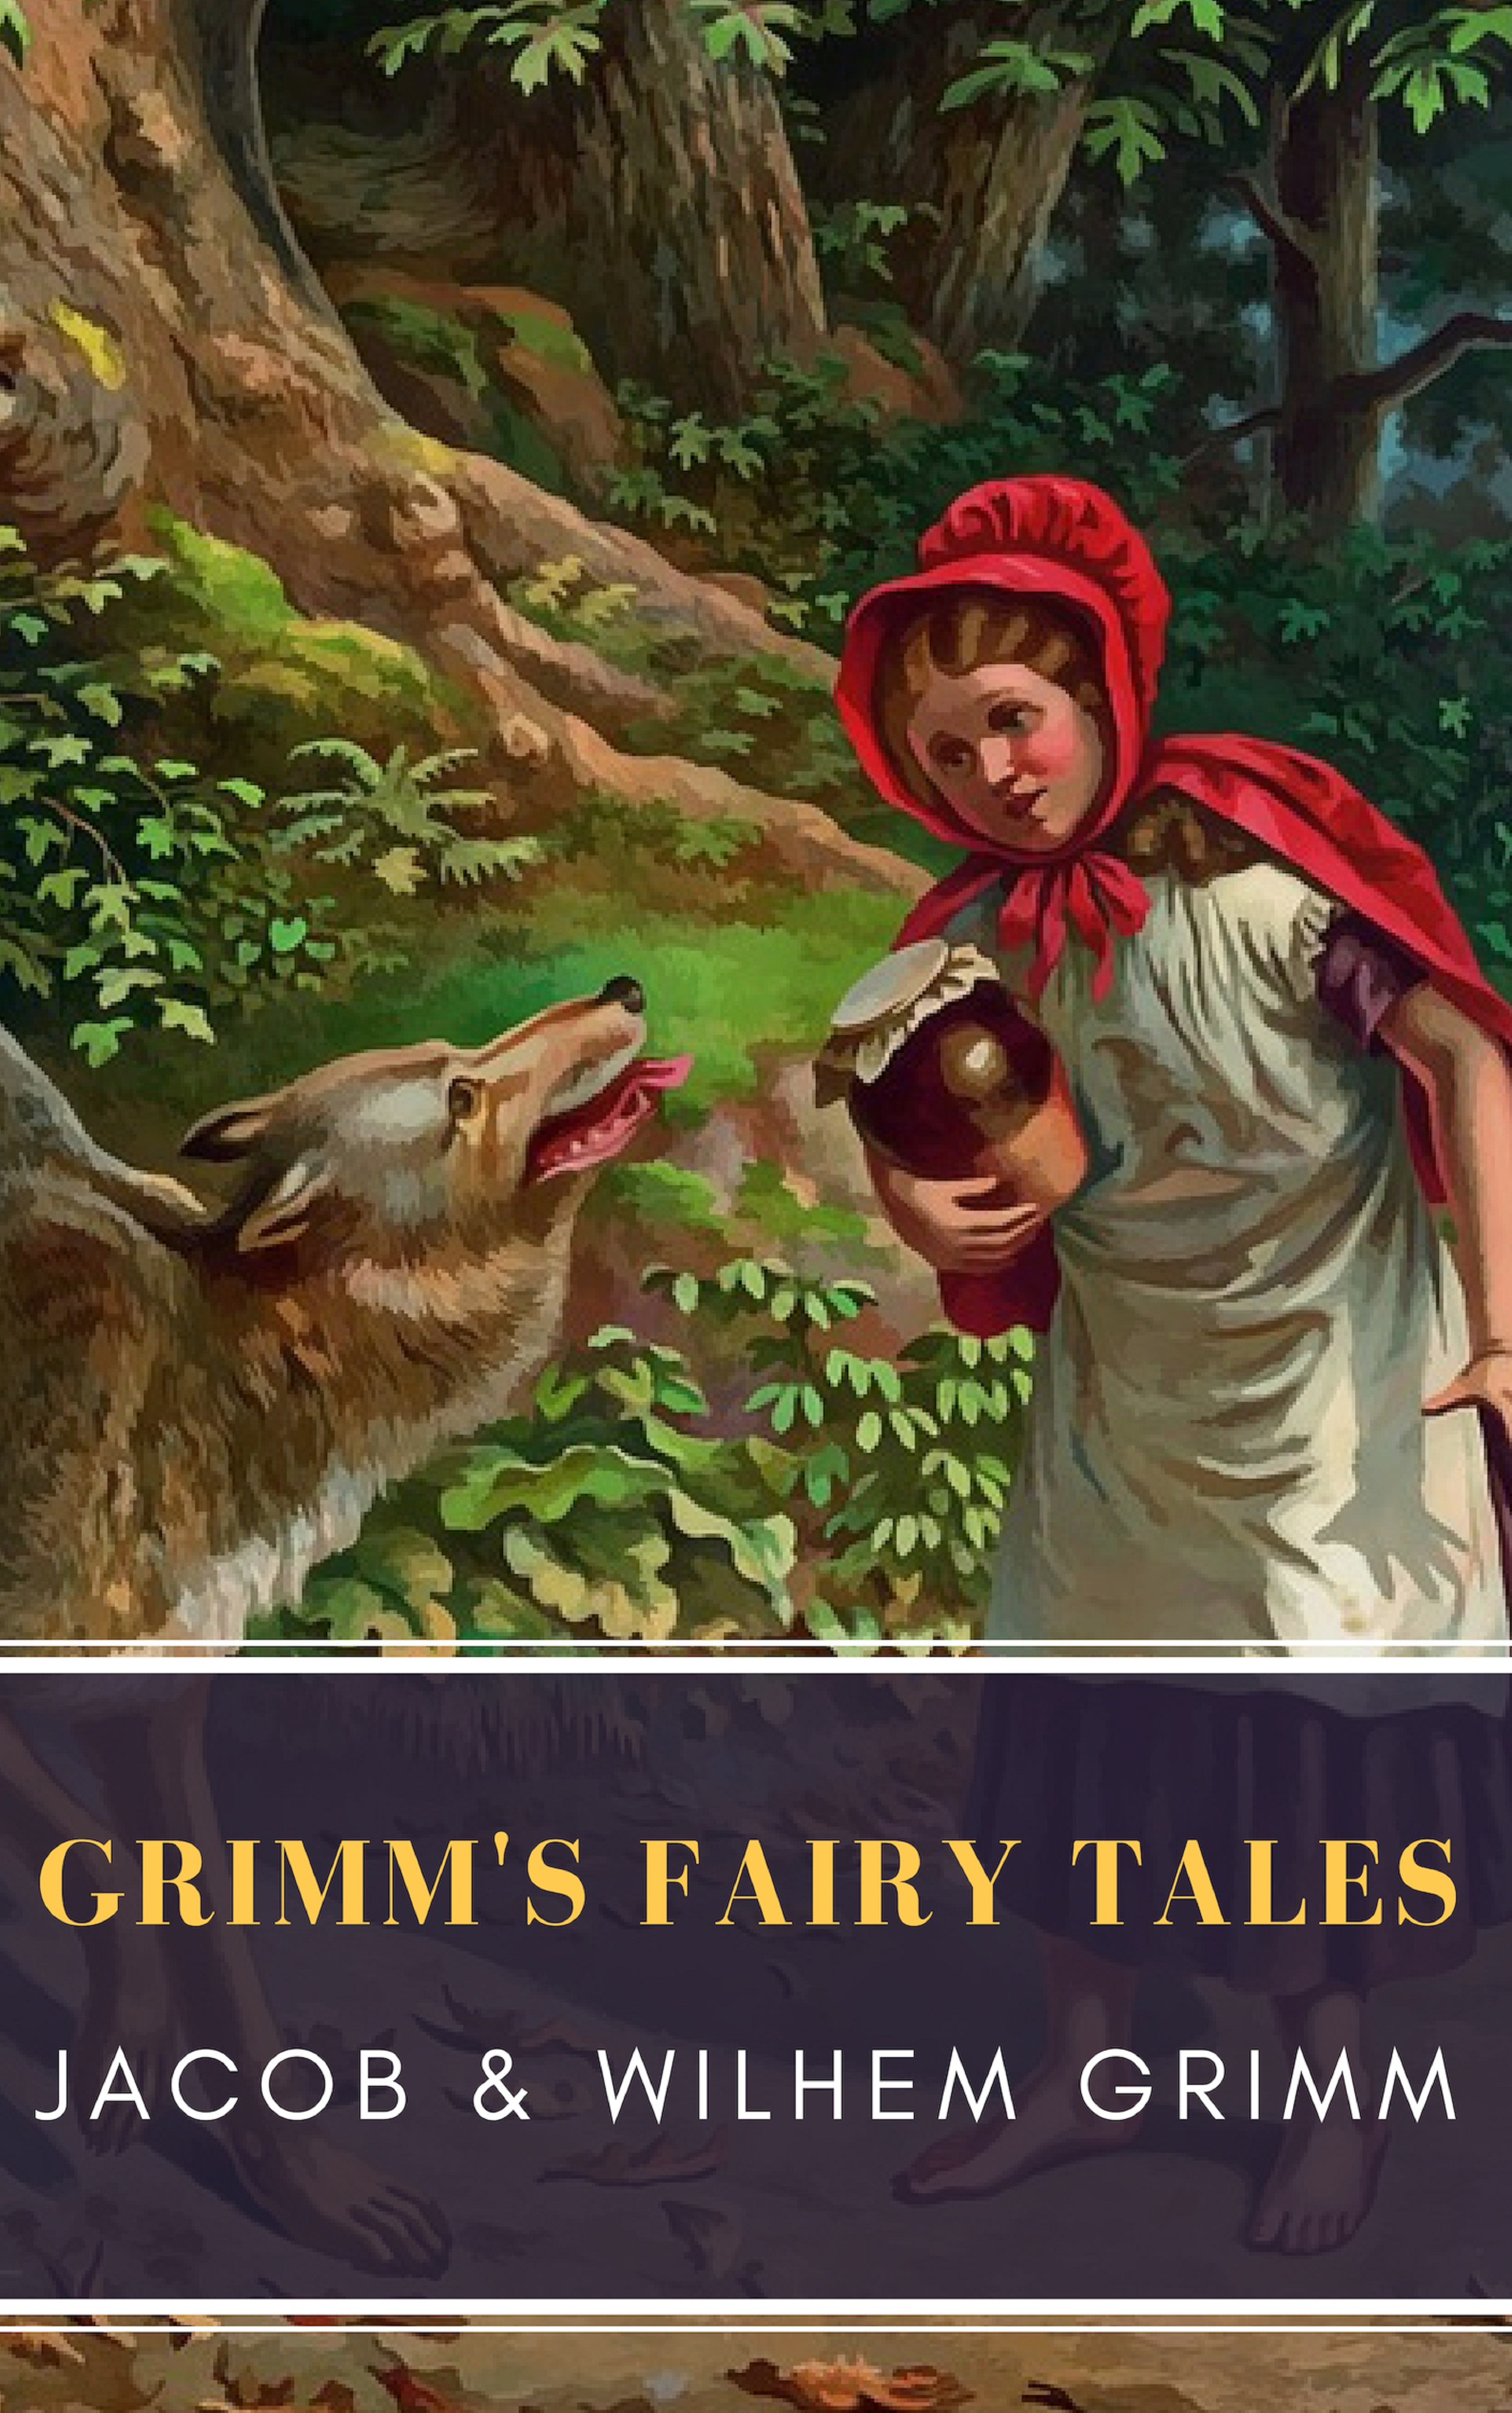 Jacob Grimm Grimm's Fairy Tales: Complete and Illustrated berentes apple r logo – a complete illustrated handbook paper only